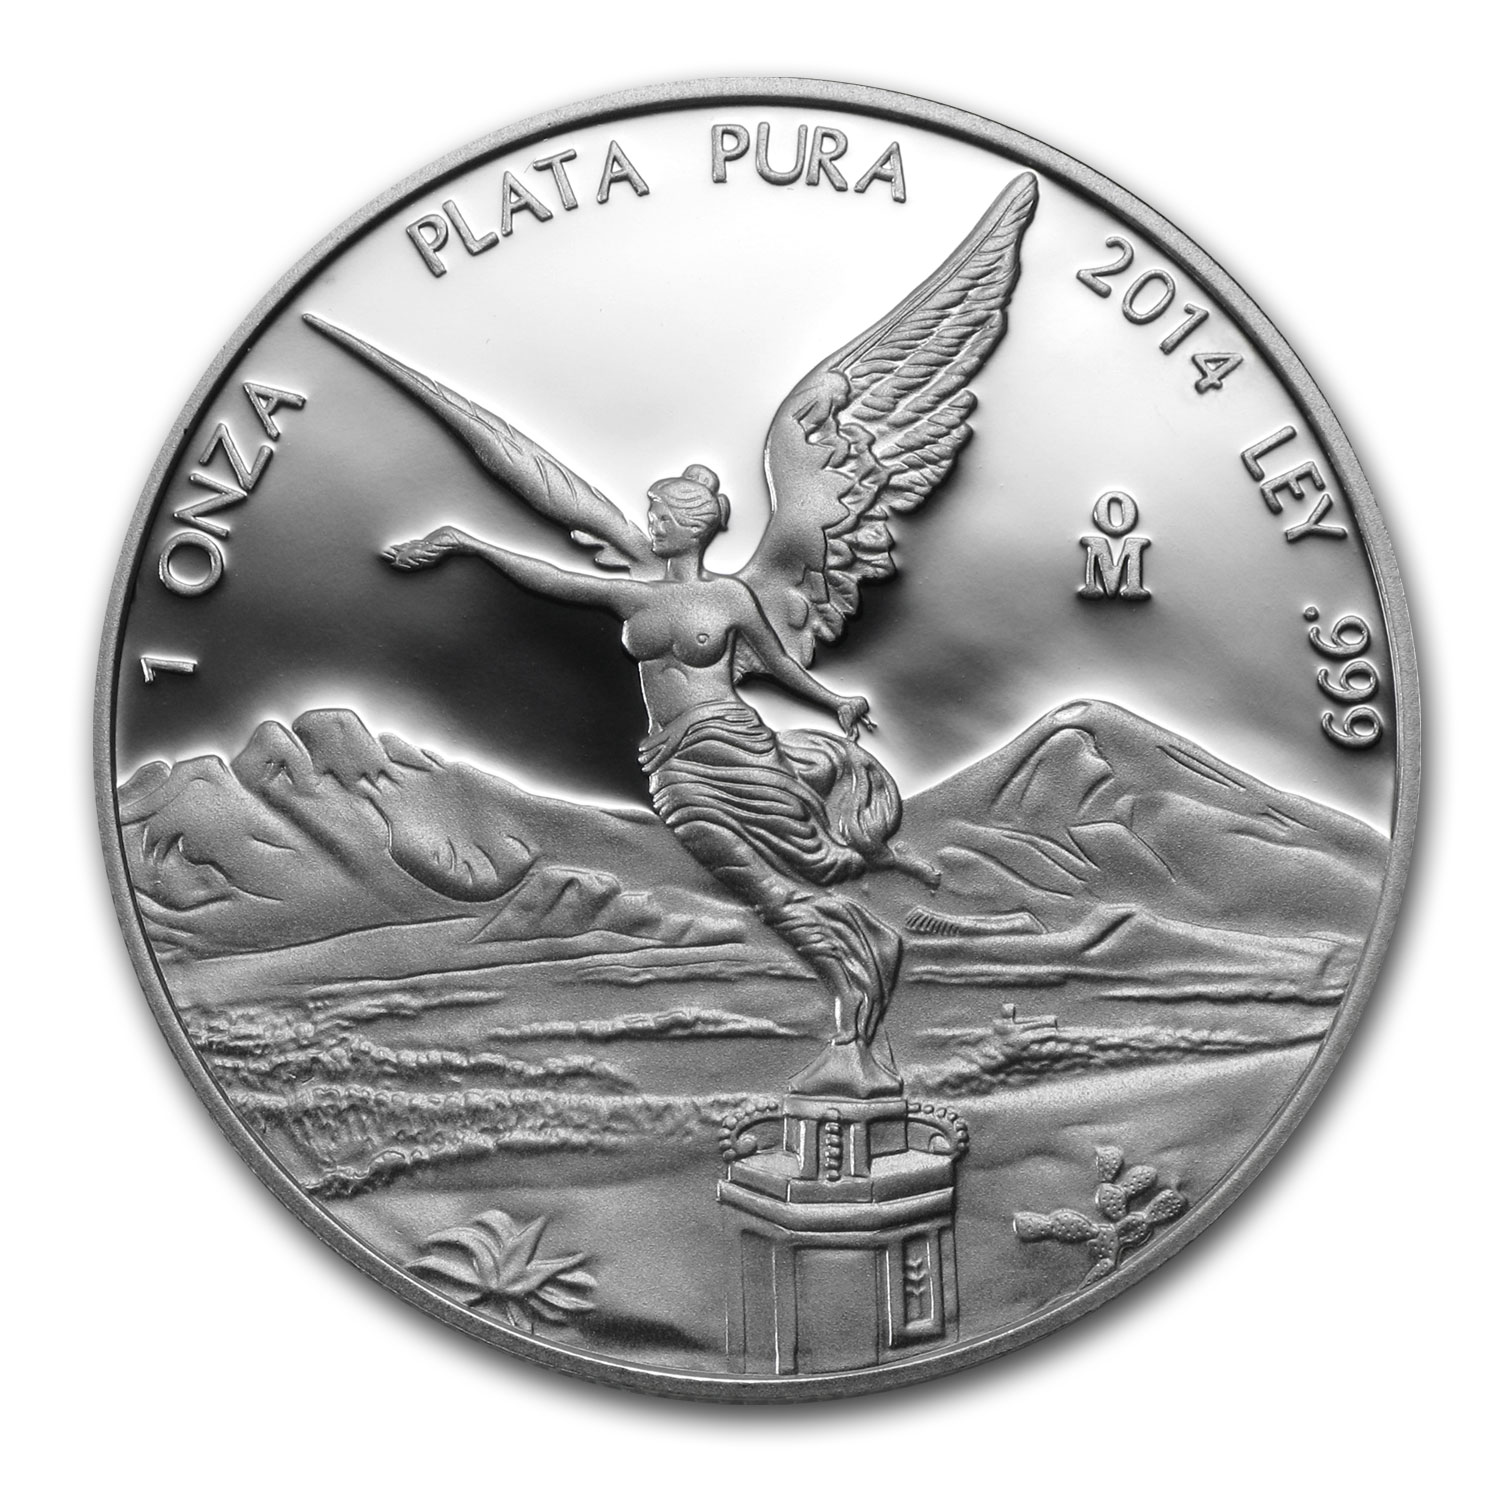 2014 Mexico 1 oz Silver Libertad Proof (In Capsule)